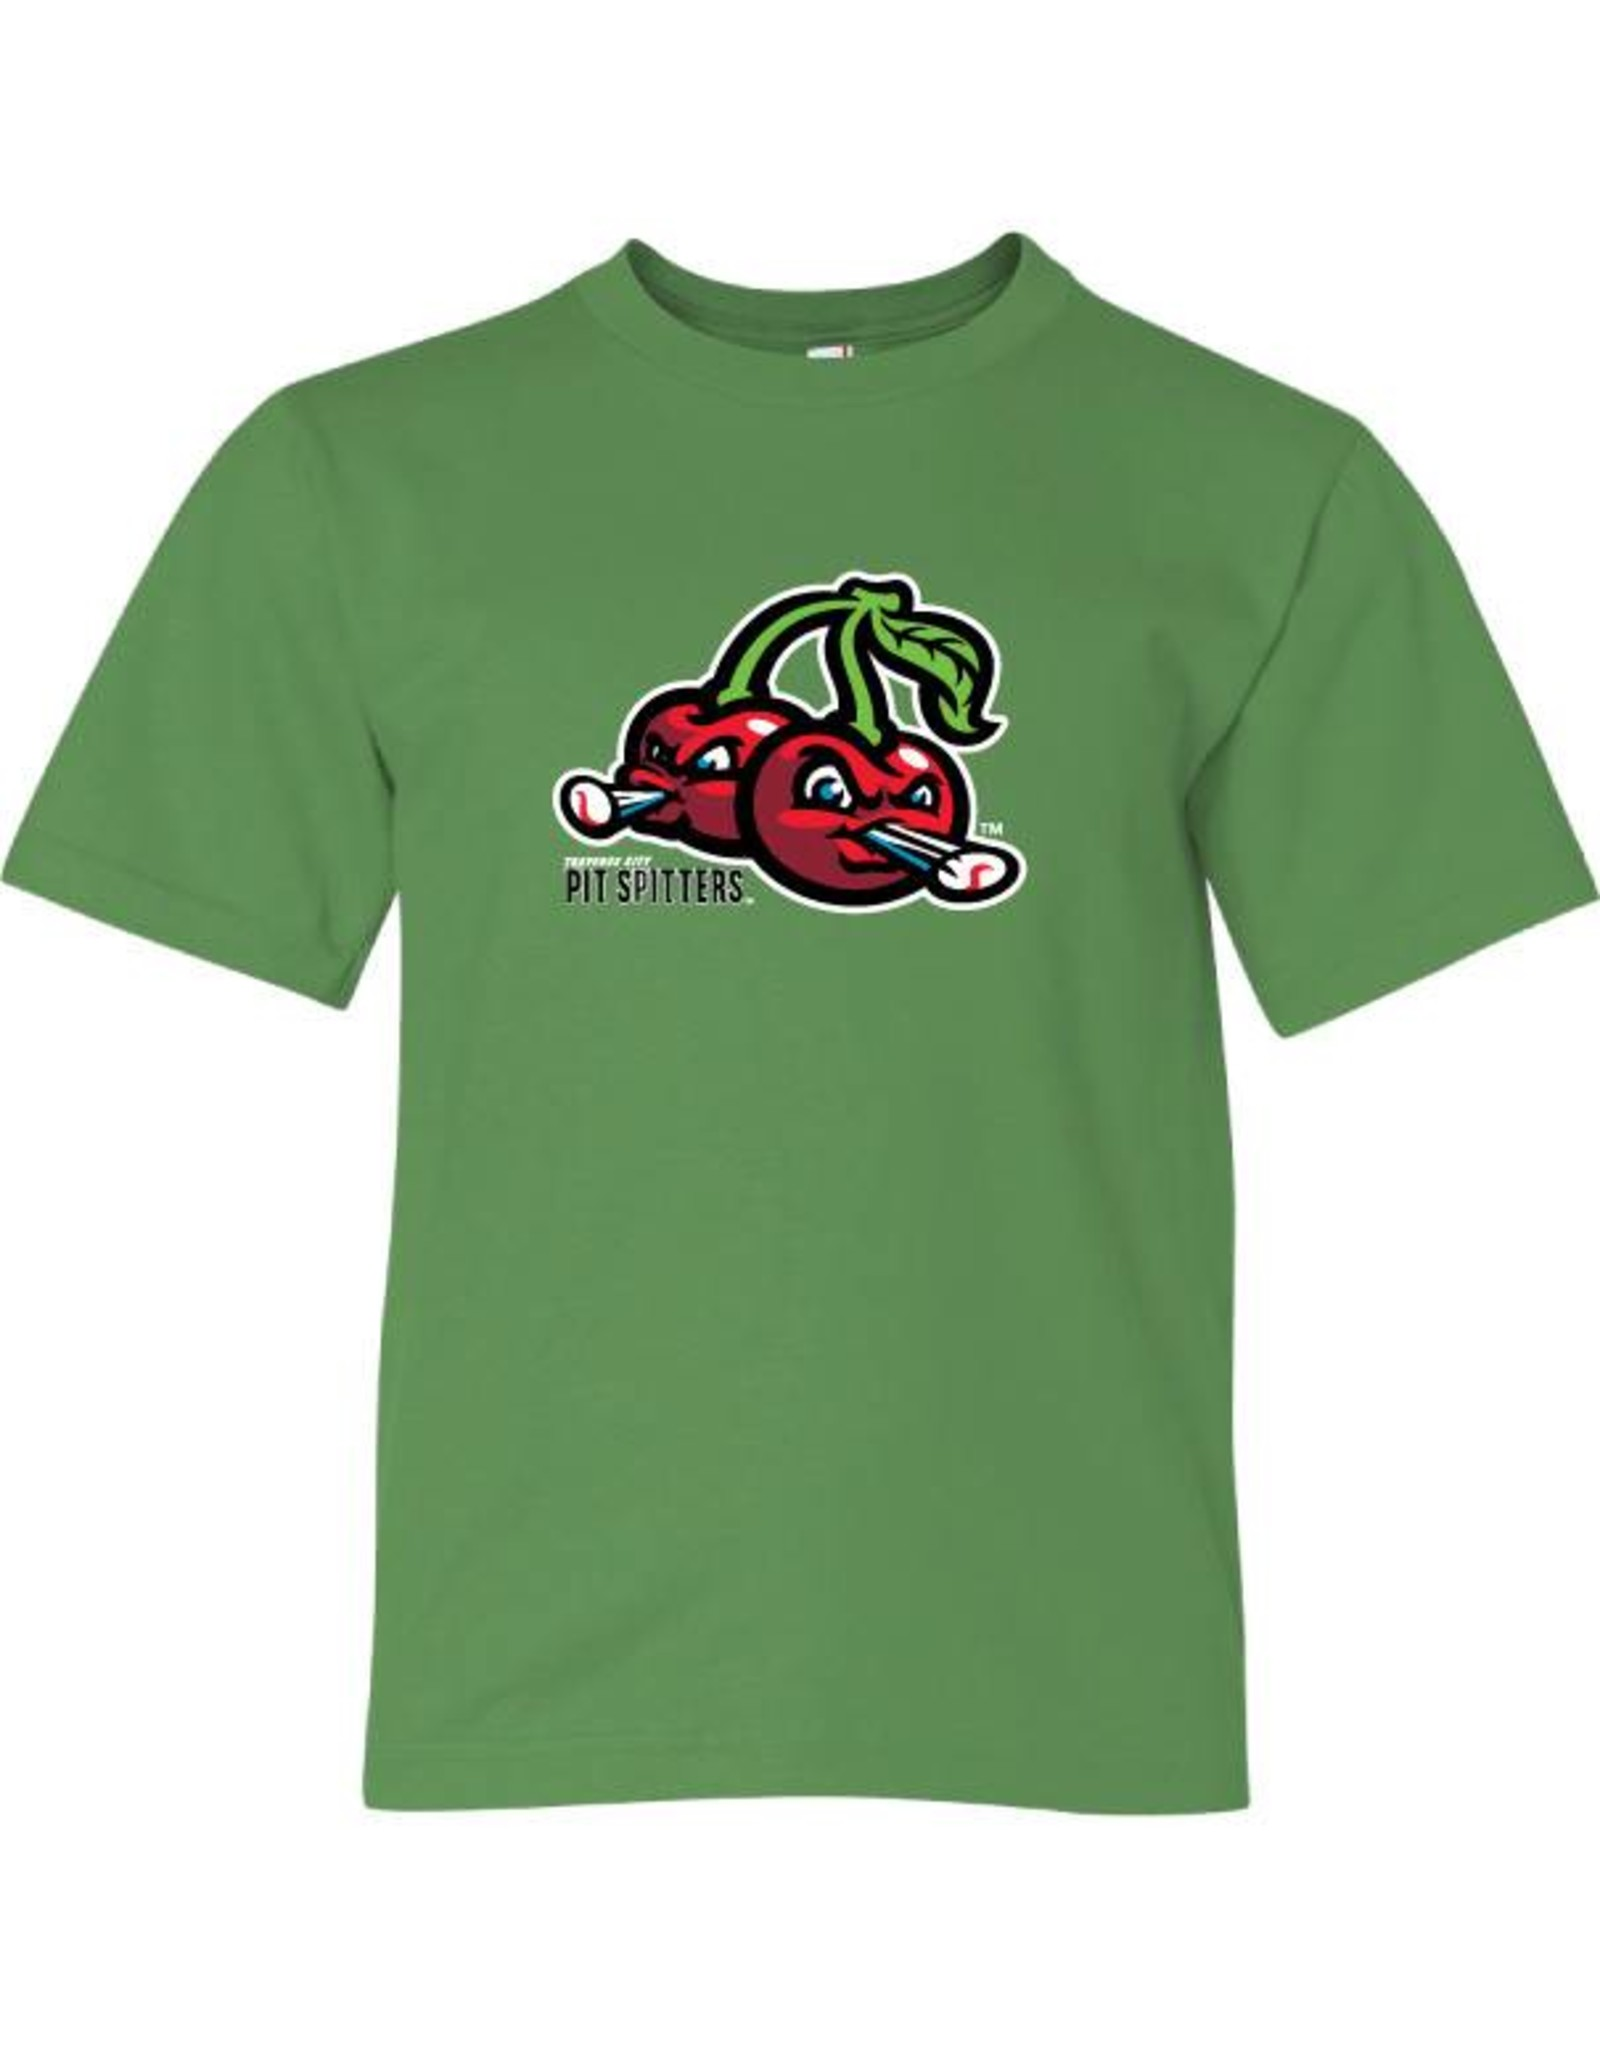 2820 Youth Cherries Logo Green Tee